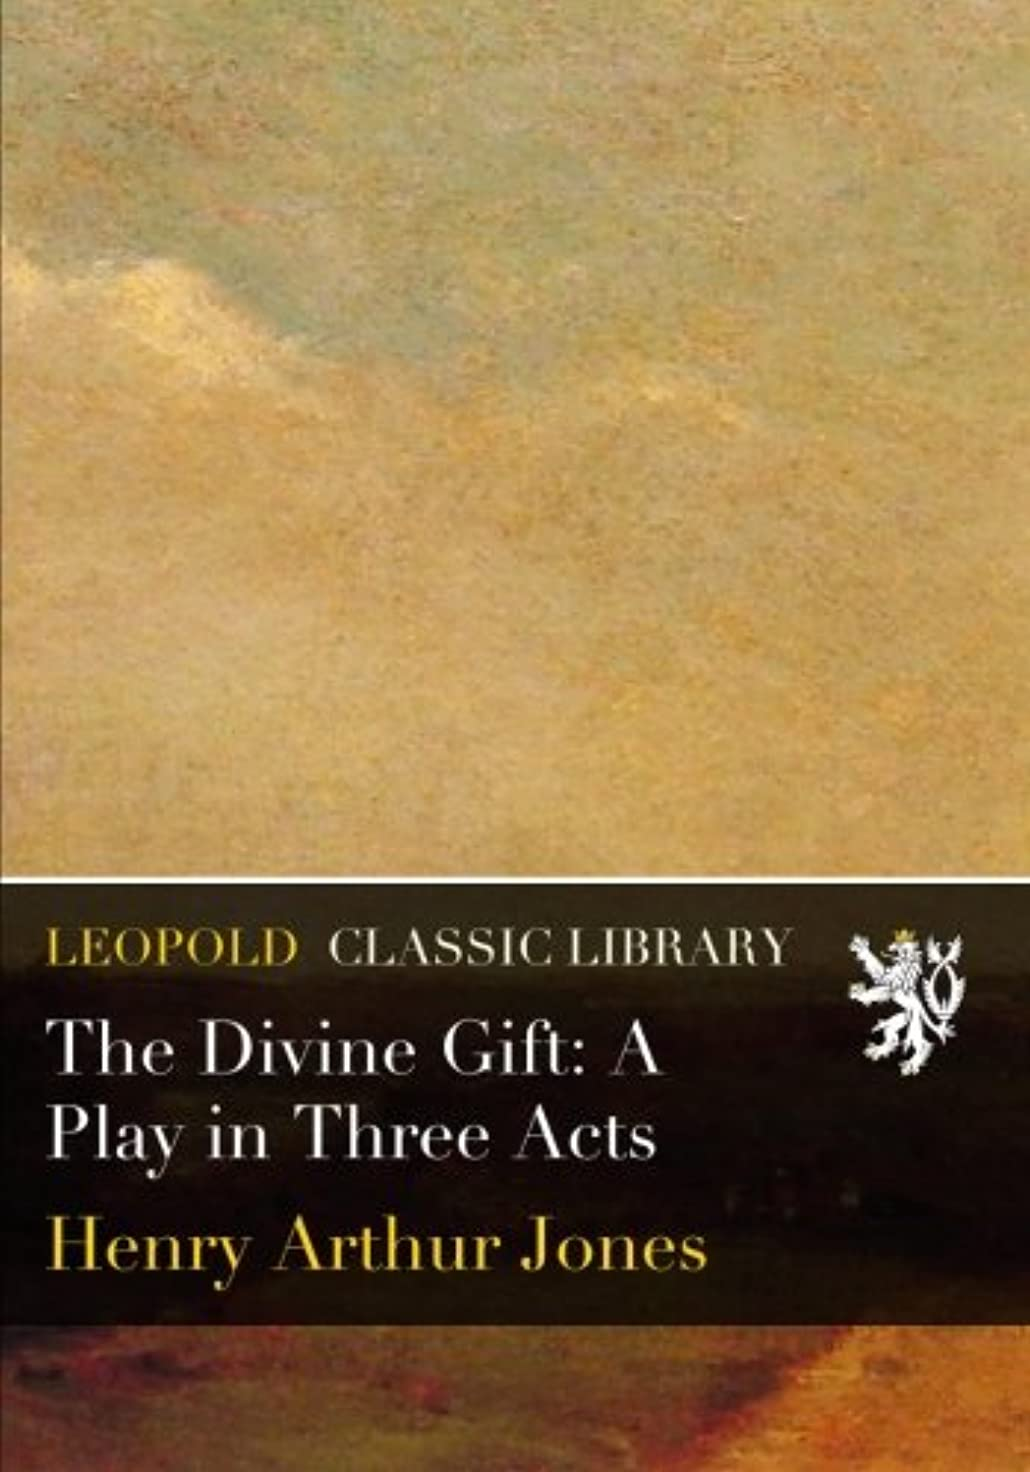 The Divine Gift: A Play in Three Acts